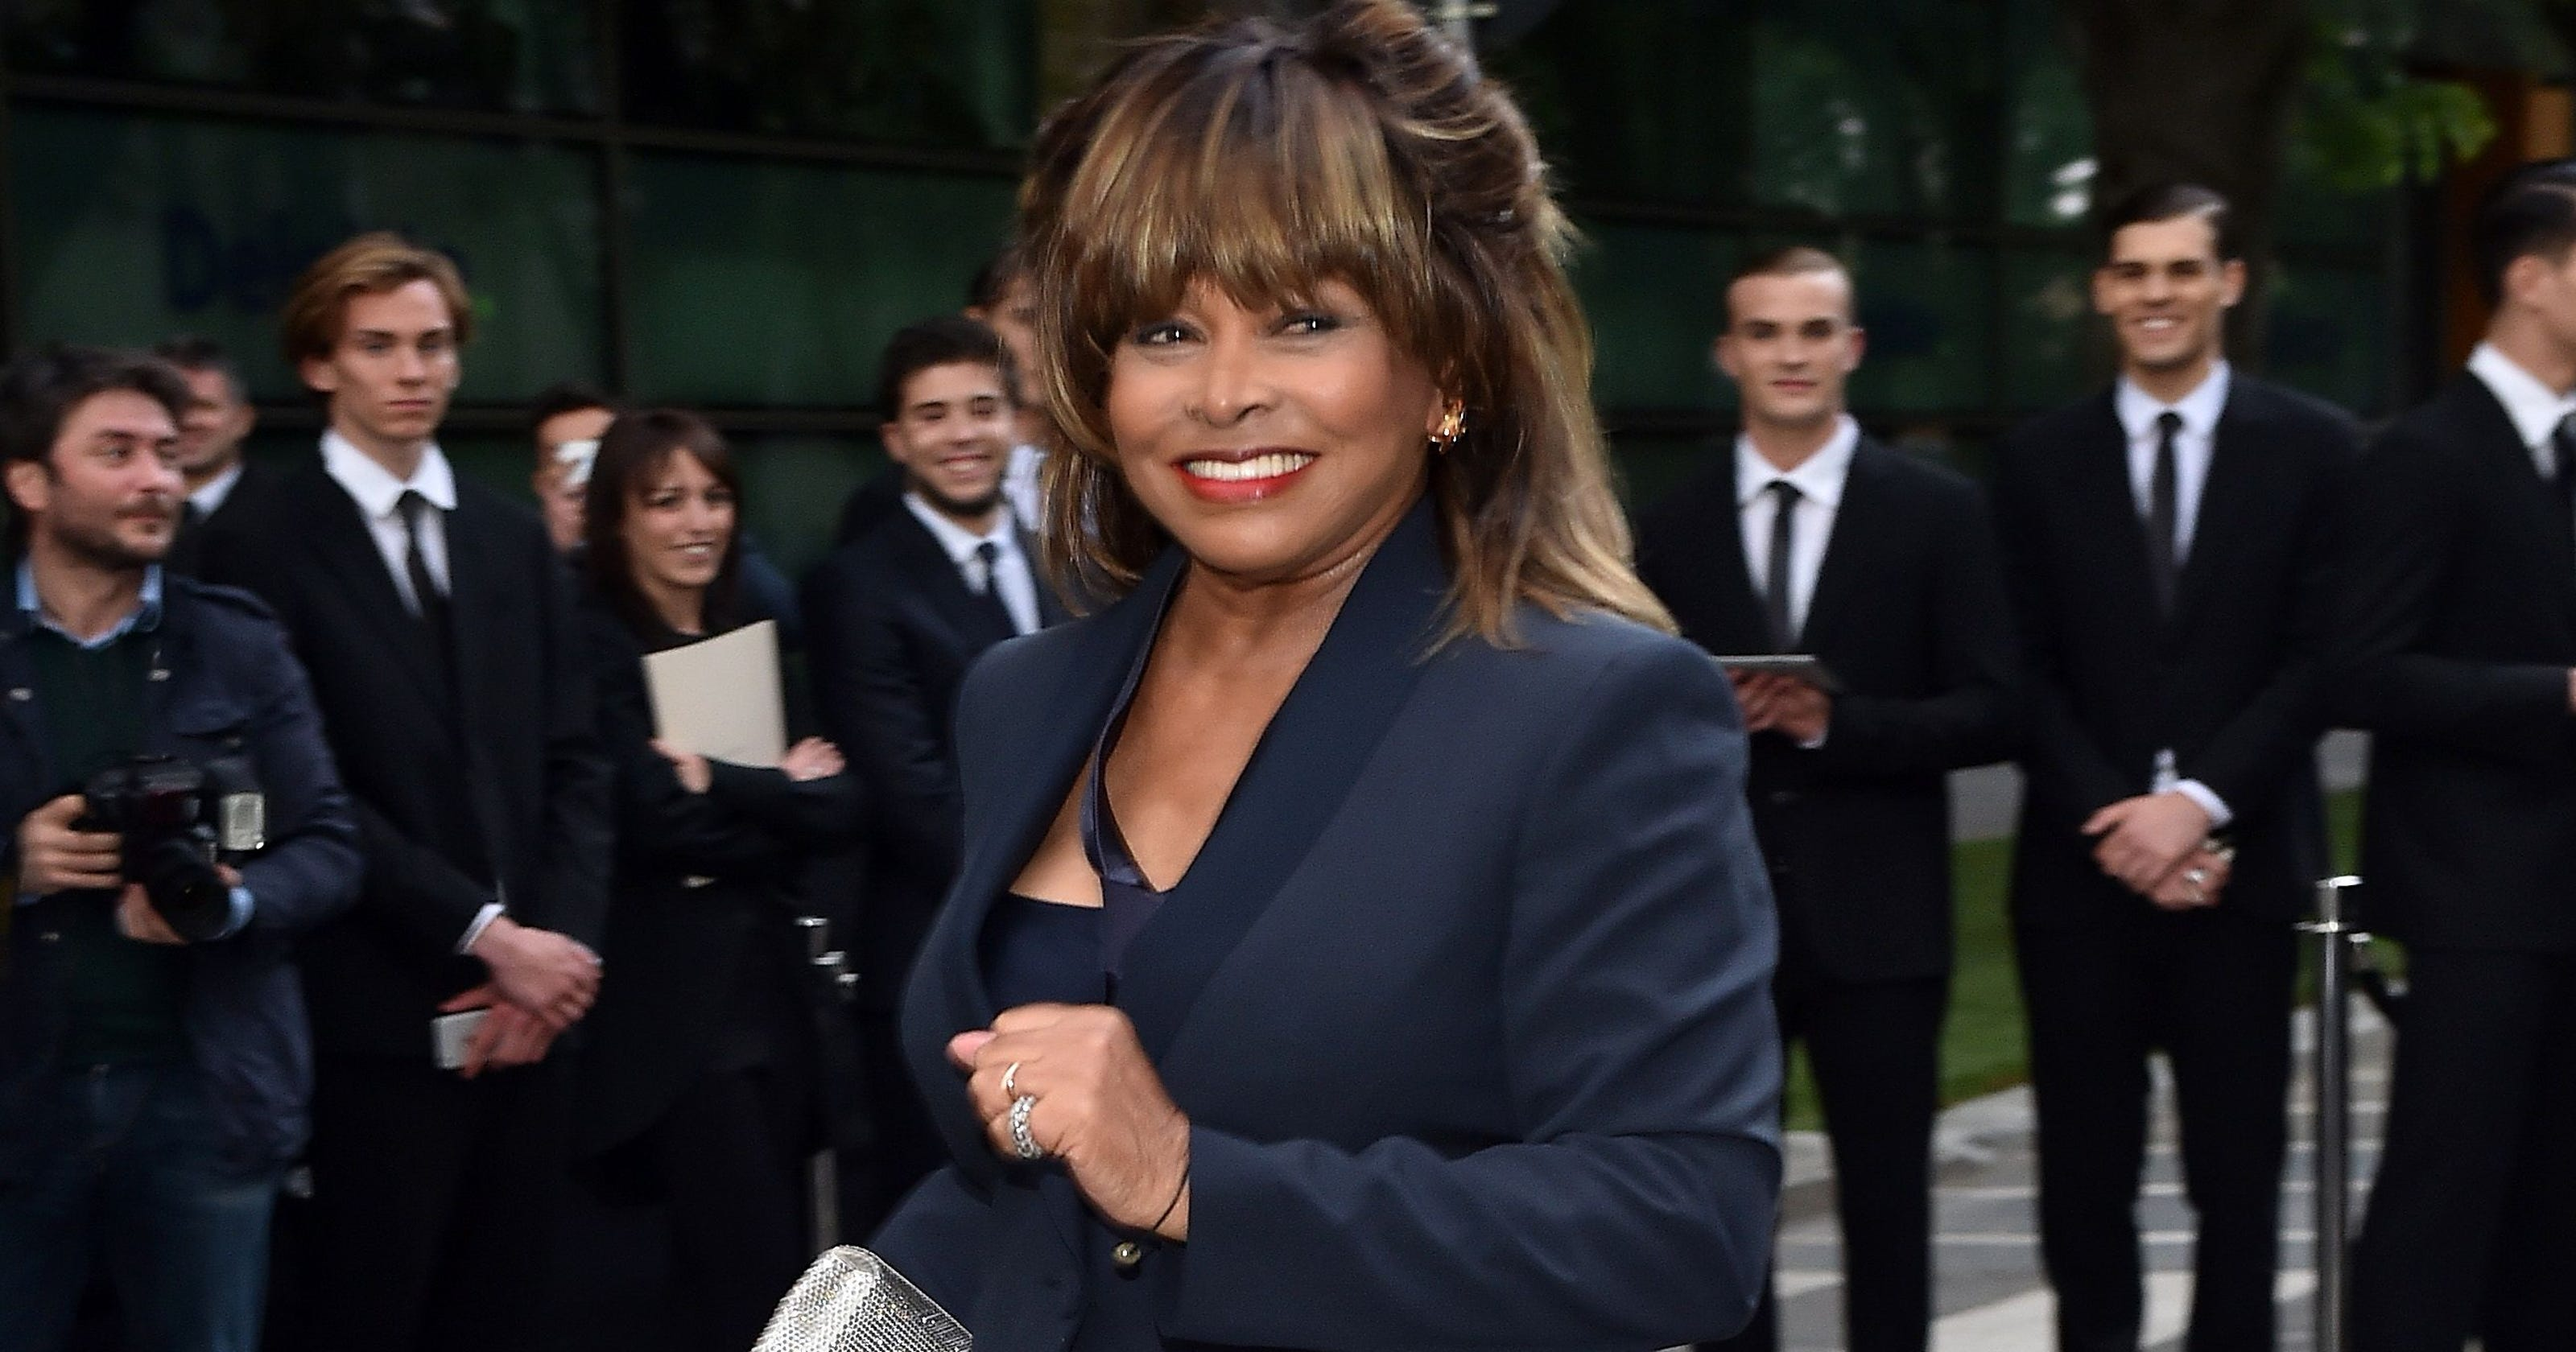 Tina Turner's firstborn son Craig Turner dies of apparent